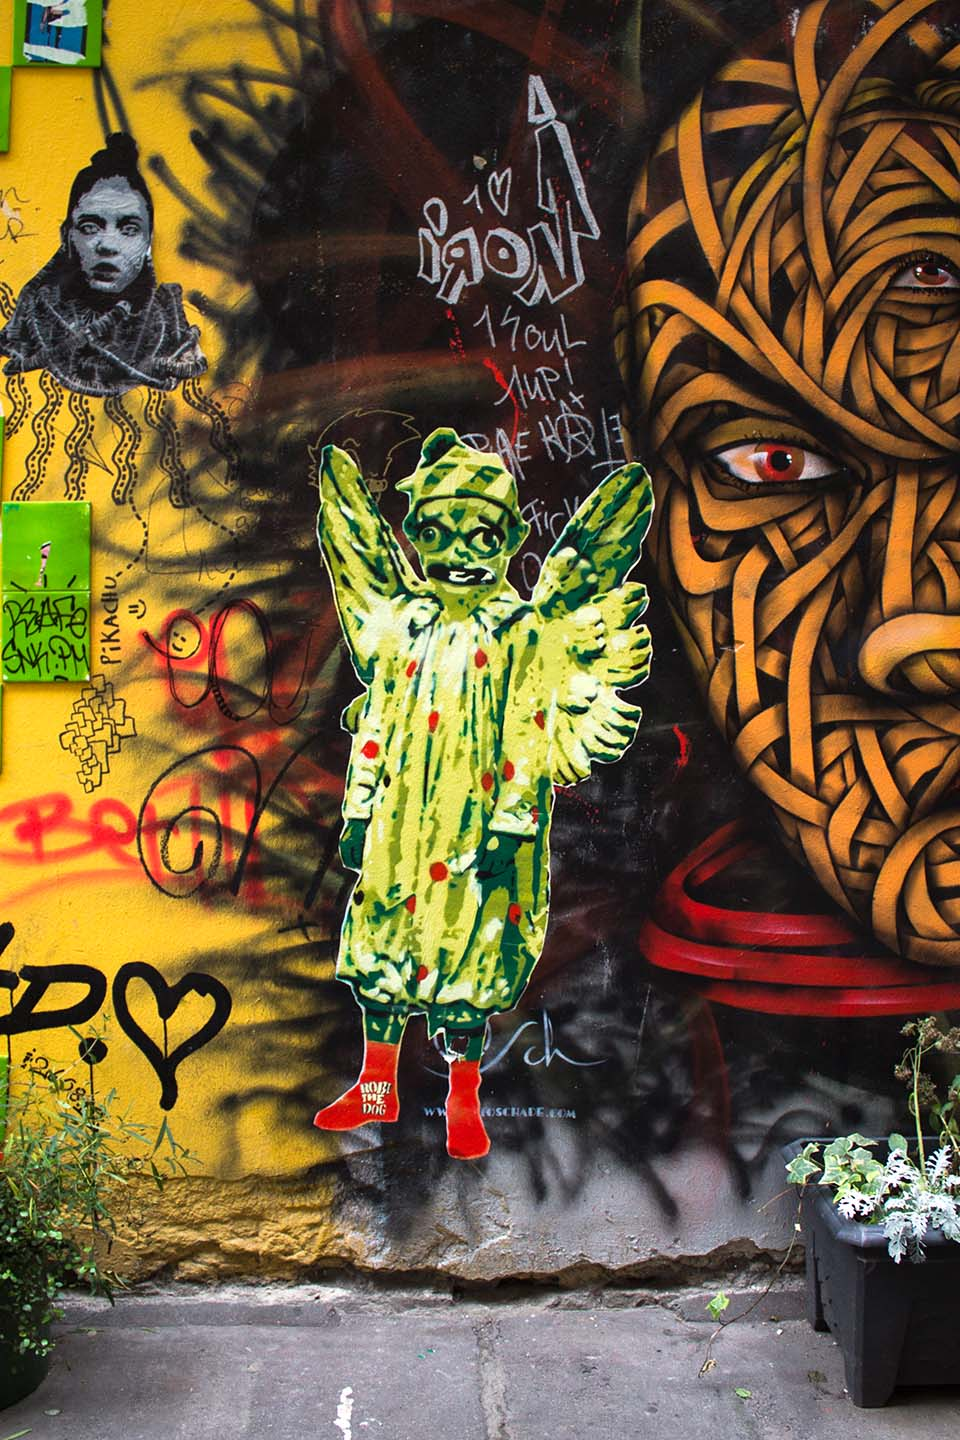 Death Angel from Street Artist Robi the Dog in Berlin